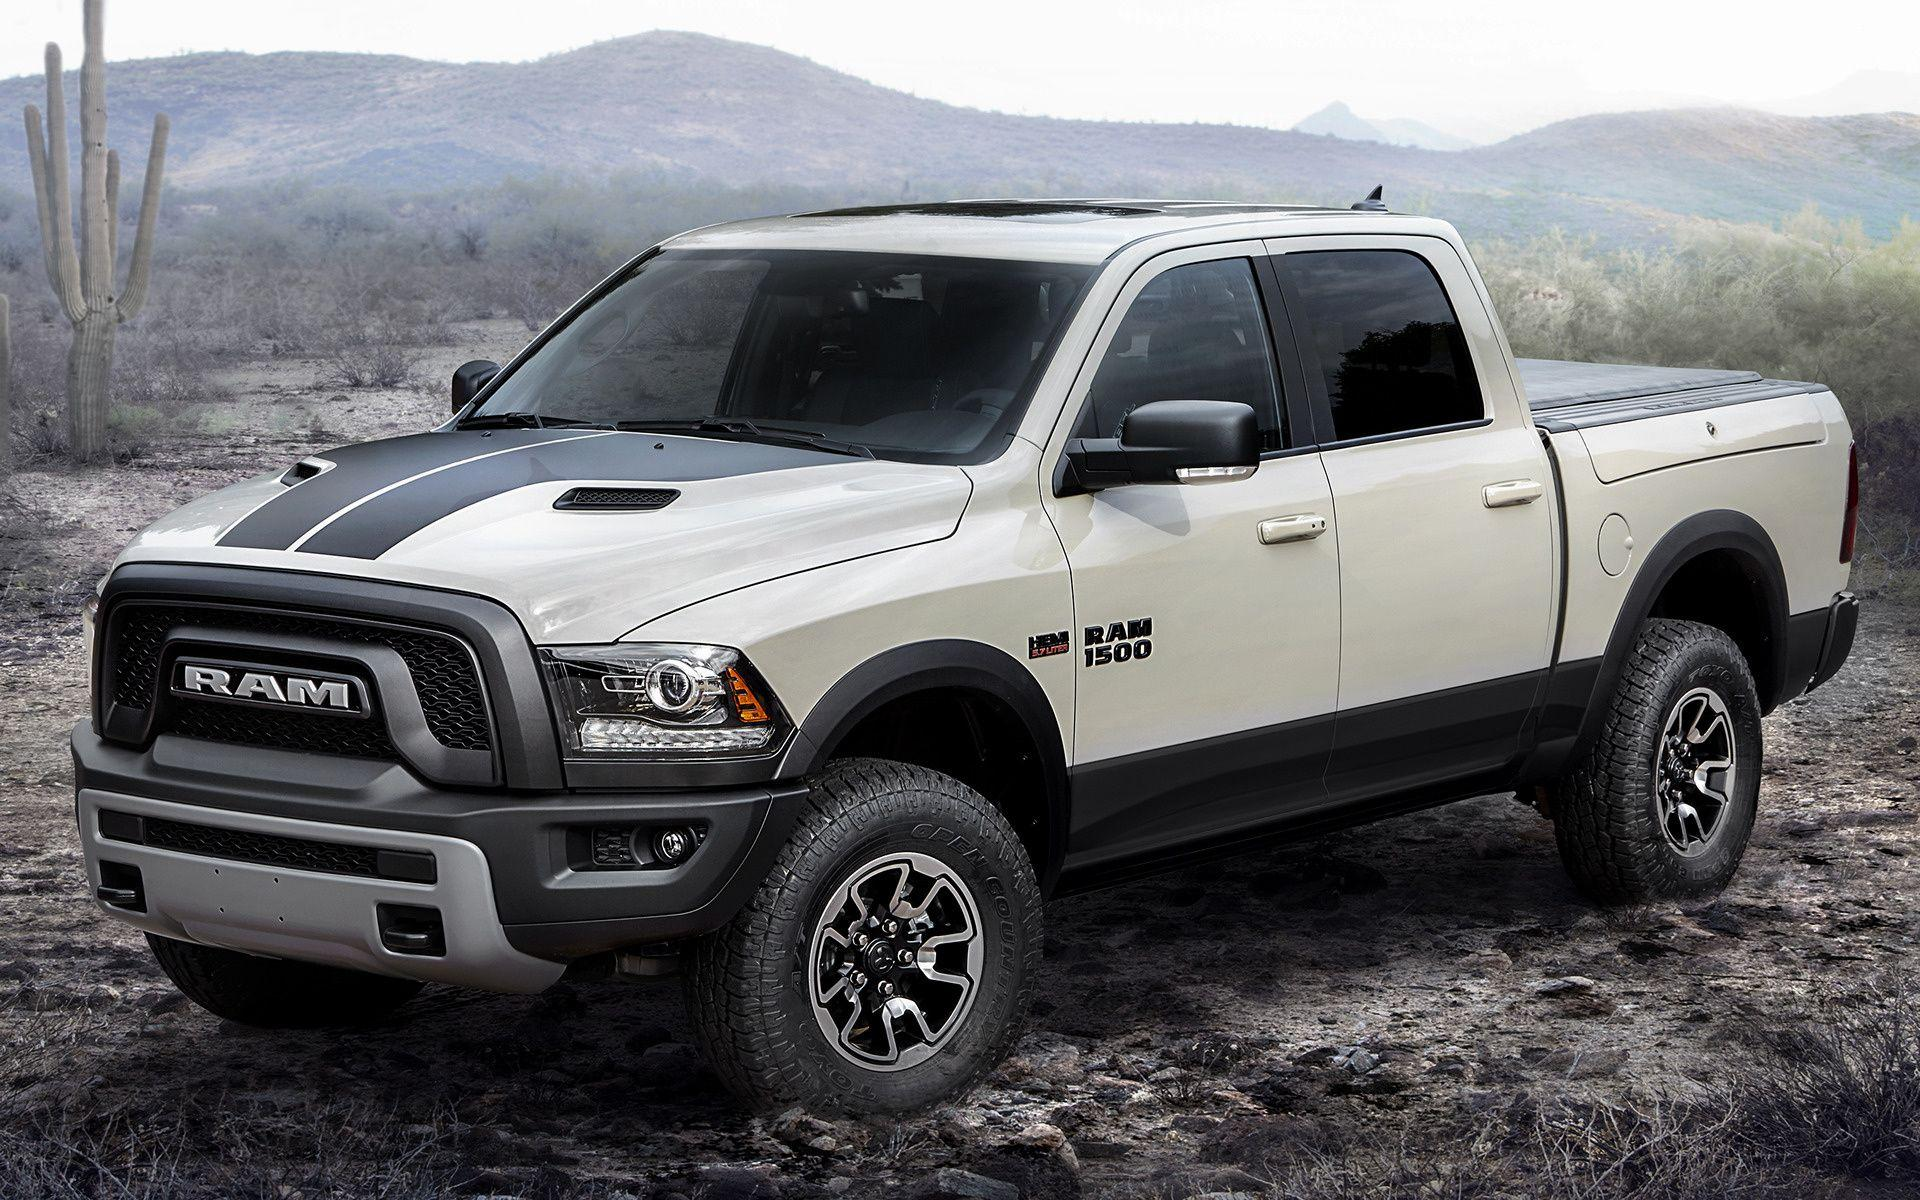 Ram 1500 Rebel Mojave Sand Crew Cab (2017) Wallpapers and HD Images ...